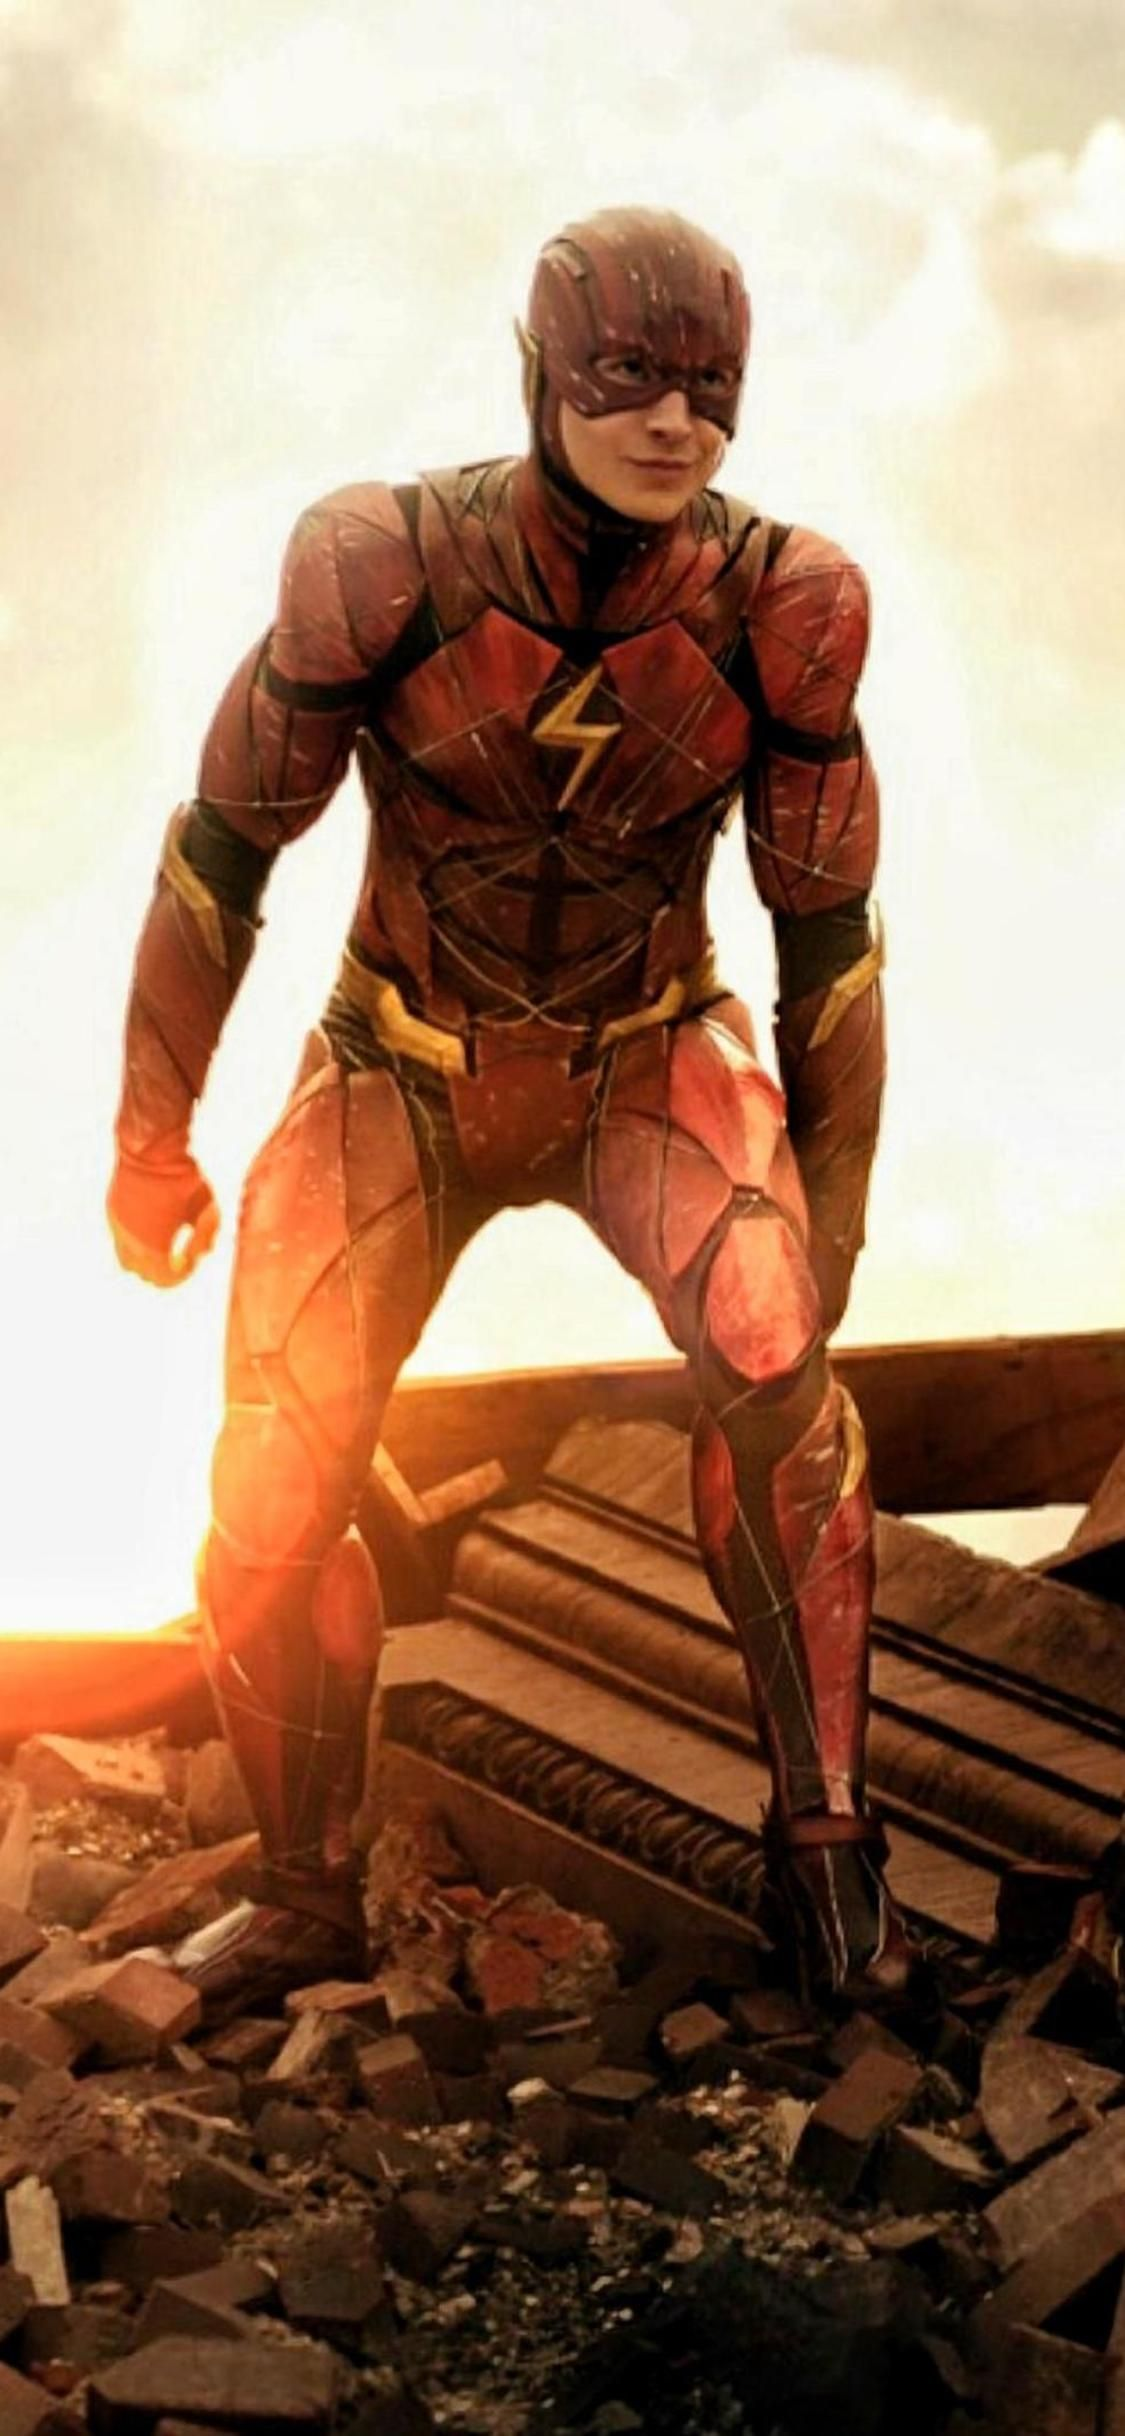 1125x2436 Flash Justice League New Iphone Xs Iphone 10 Iphone X Hd 4k Wallpapers Images Backgrounds Phot Justice League Flash Justice League Superhero Comic